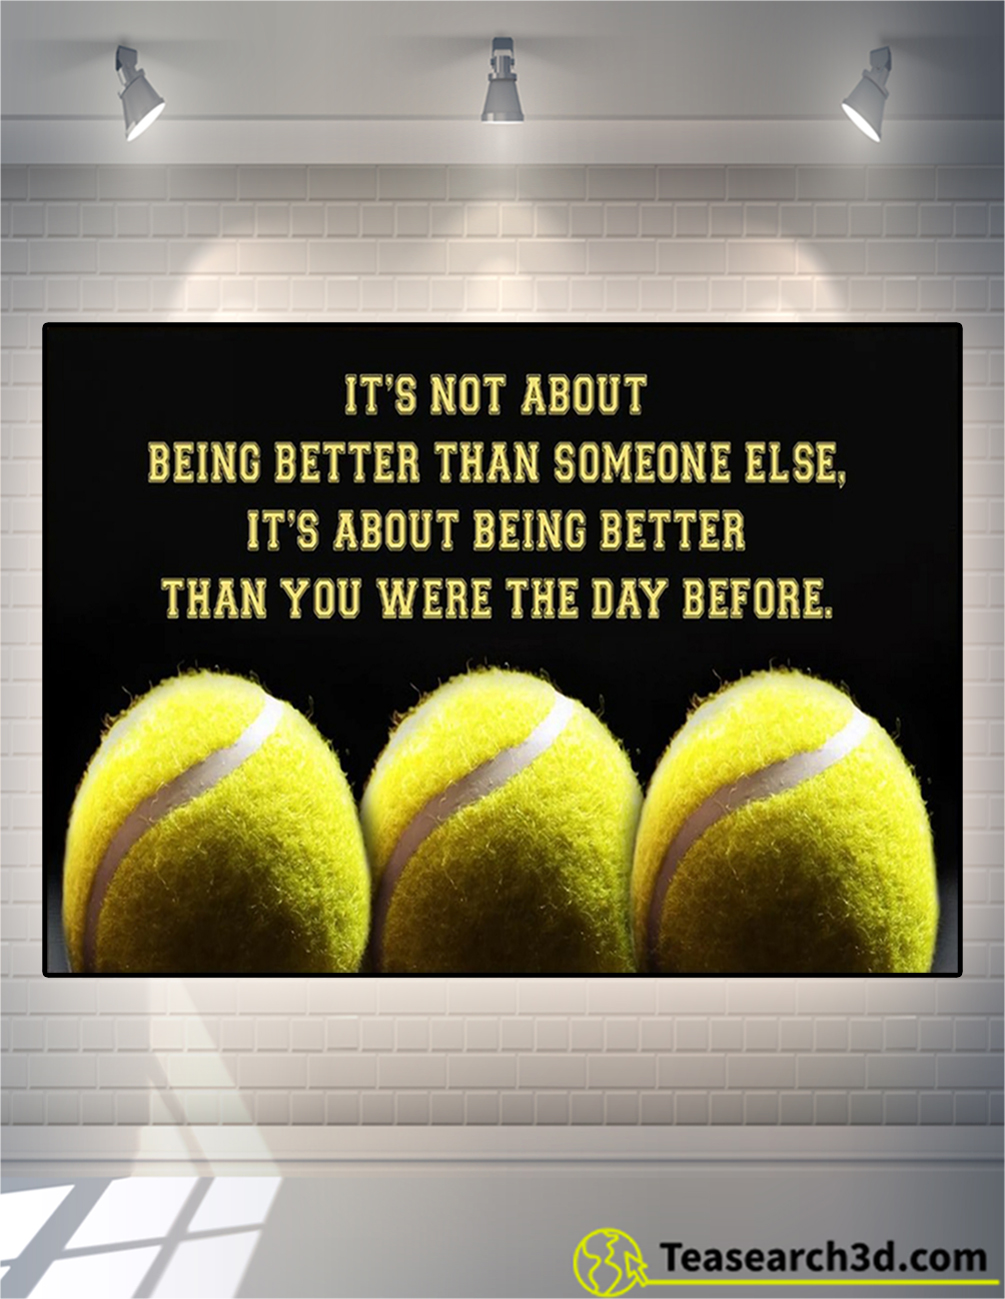 Personalized custom name tennis it's not about poster